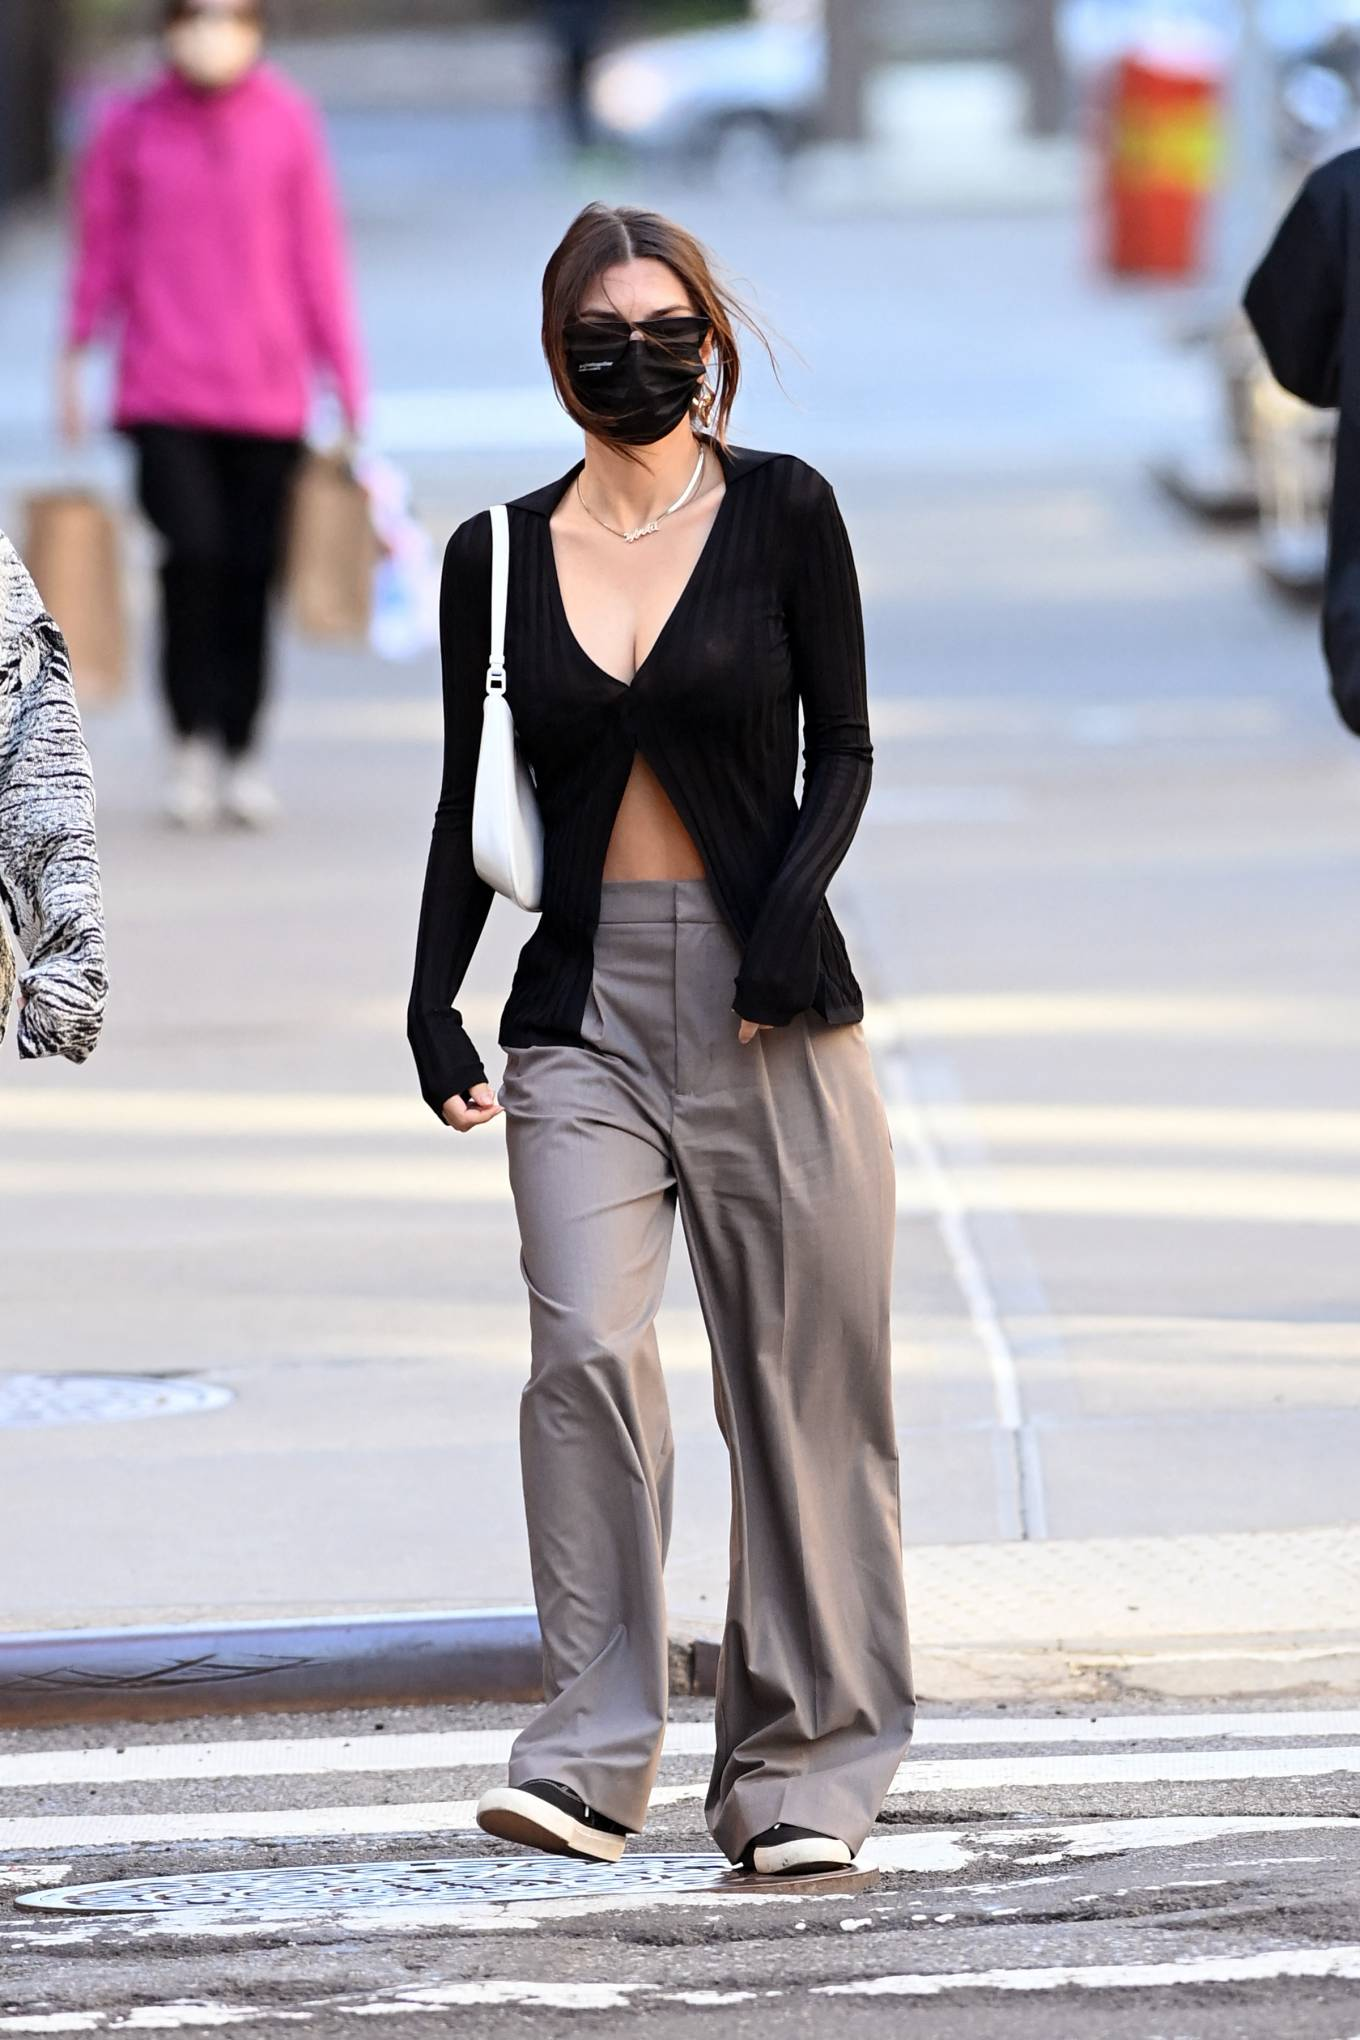 Emily Ratajkowski, Keds sneakers, black sneakers, white Prada shoulder bag, black Aya Muse cardigan, round, lace-up, flat heel, canvas, black sunglasses, grey trousers. Emily Ratajkowski rocking round black canvas lace-up sneakers by Keds with flat heel